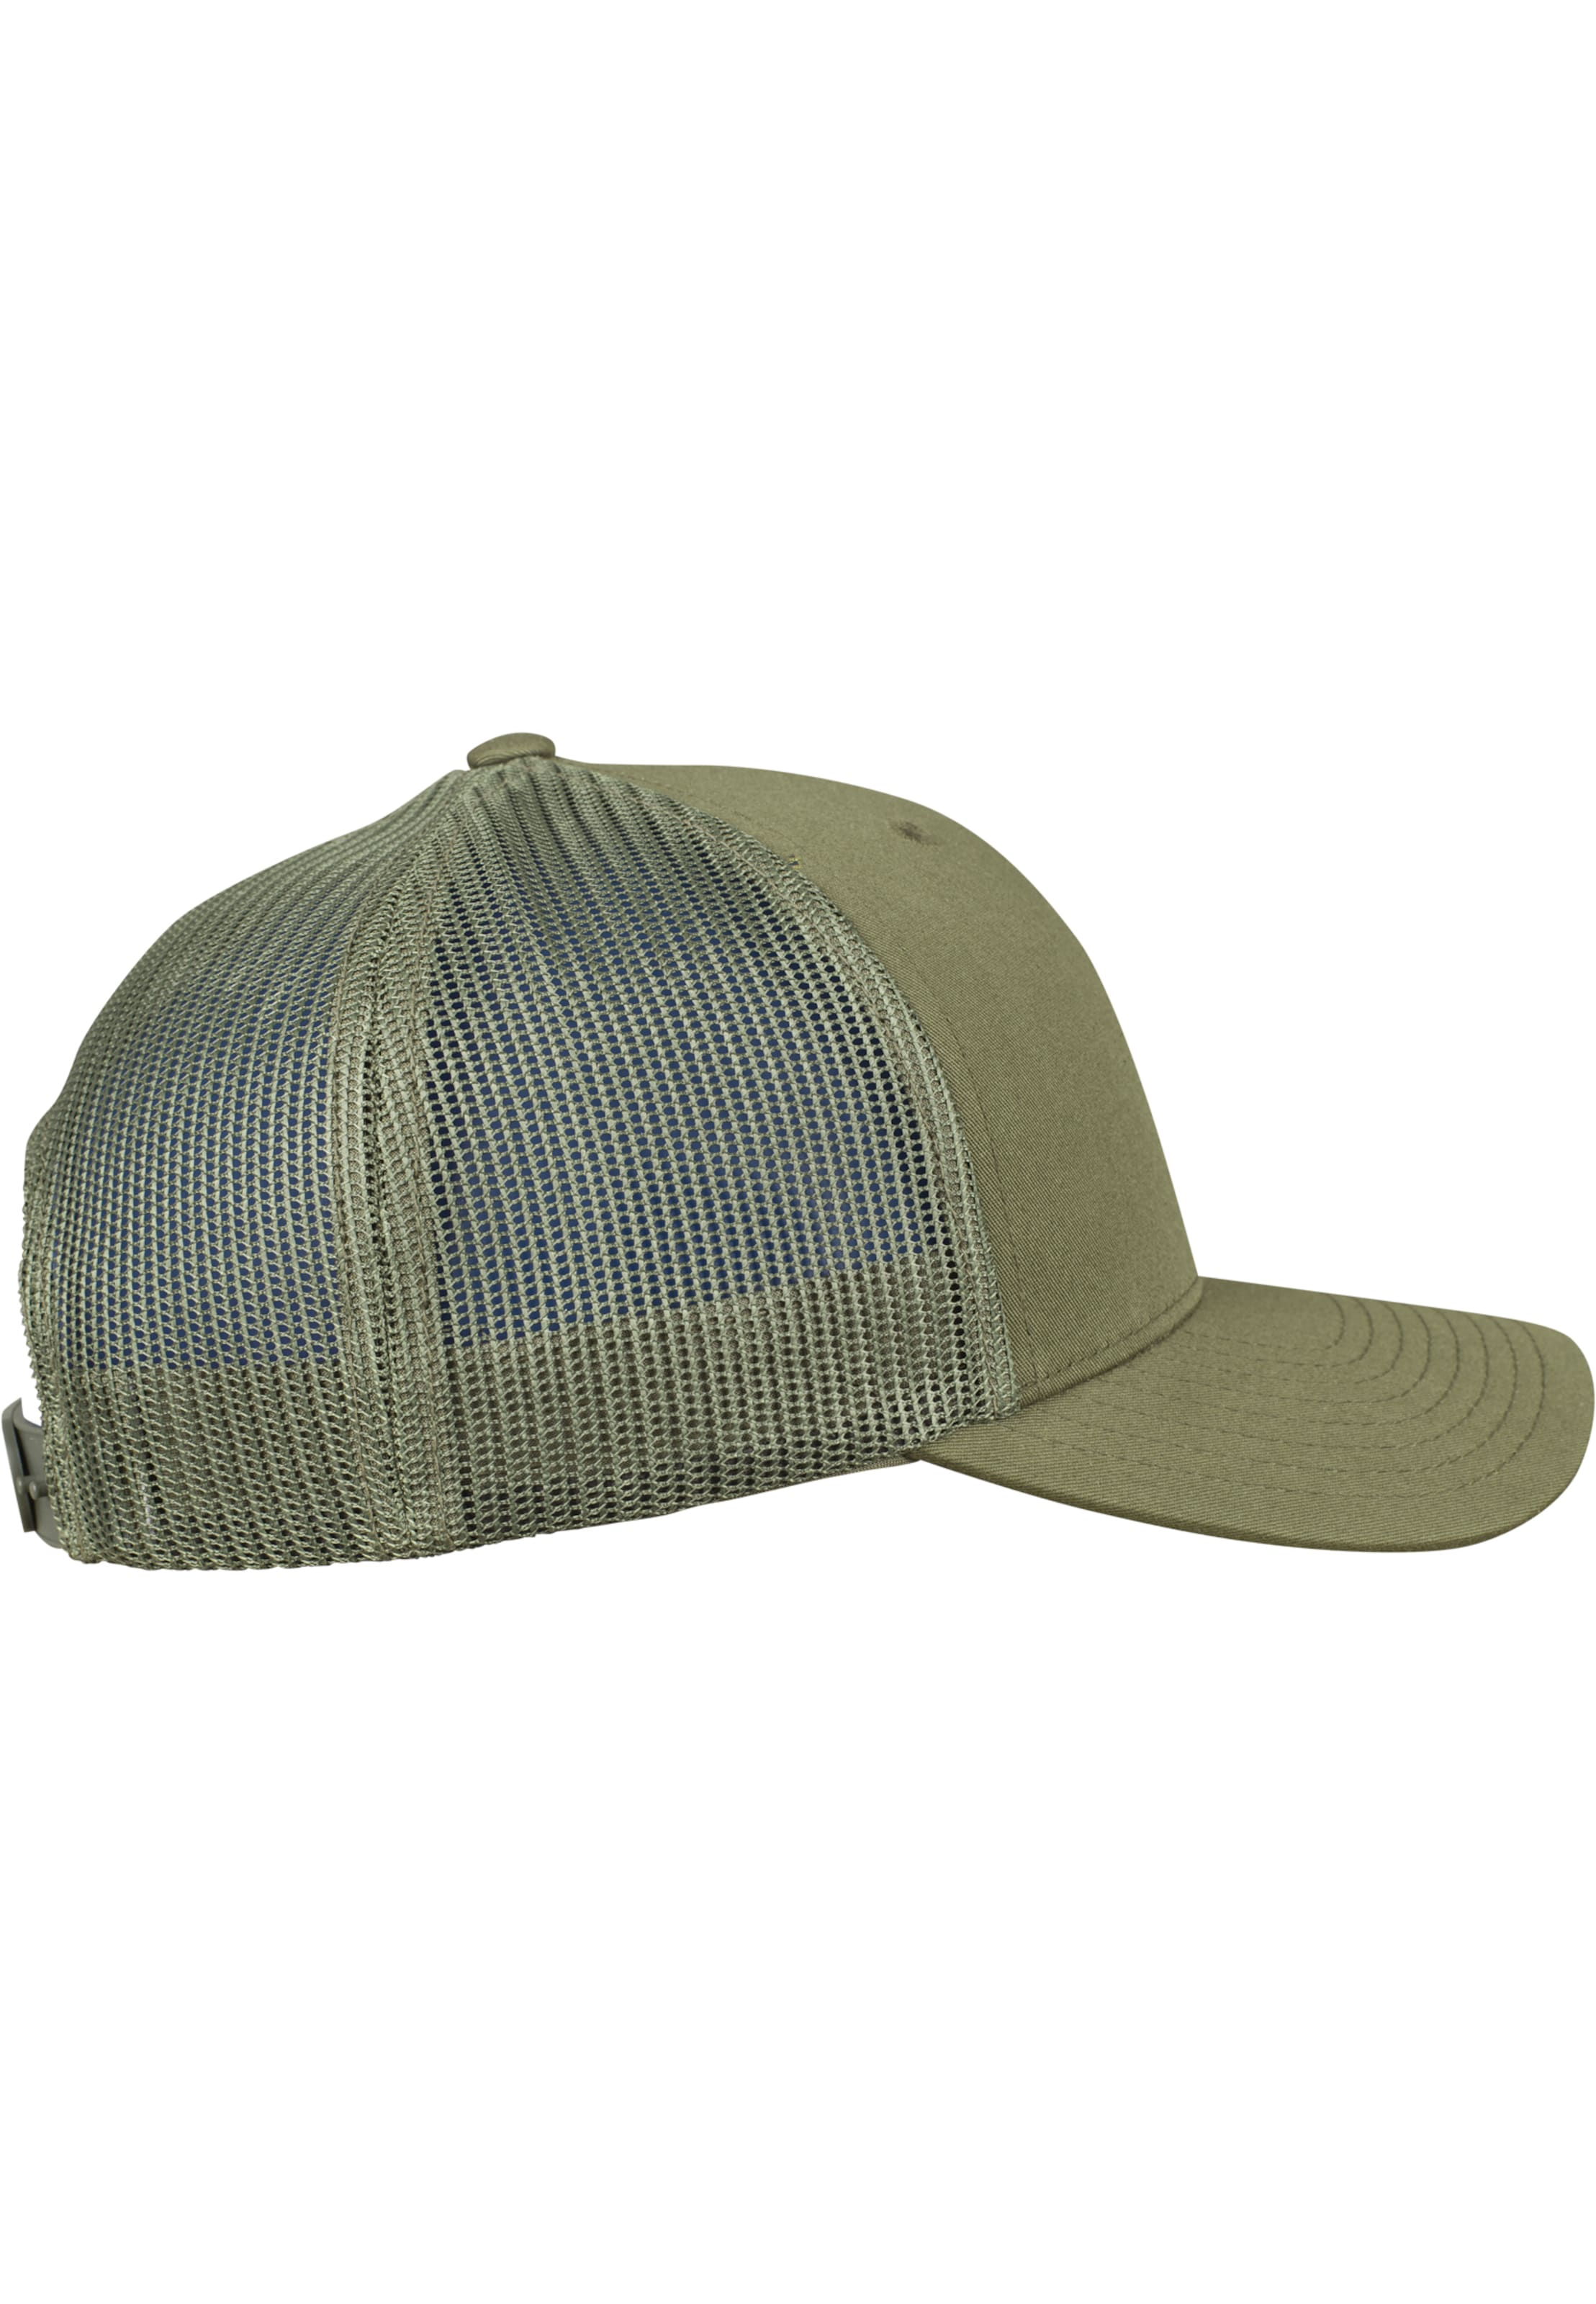 Flexfit 'retro Trucker' In Cap Khaki dBoCxe